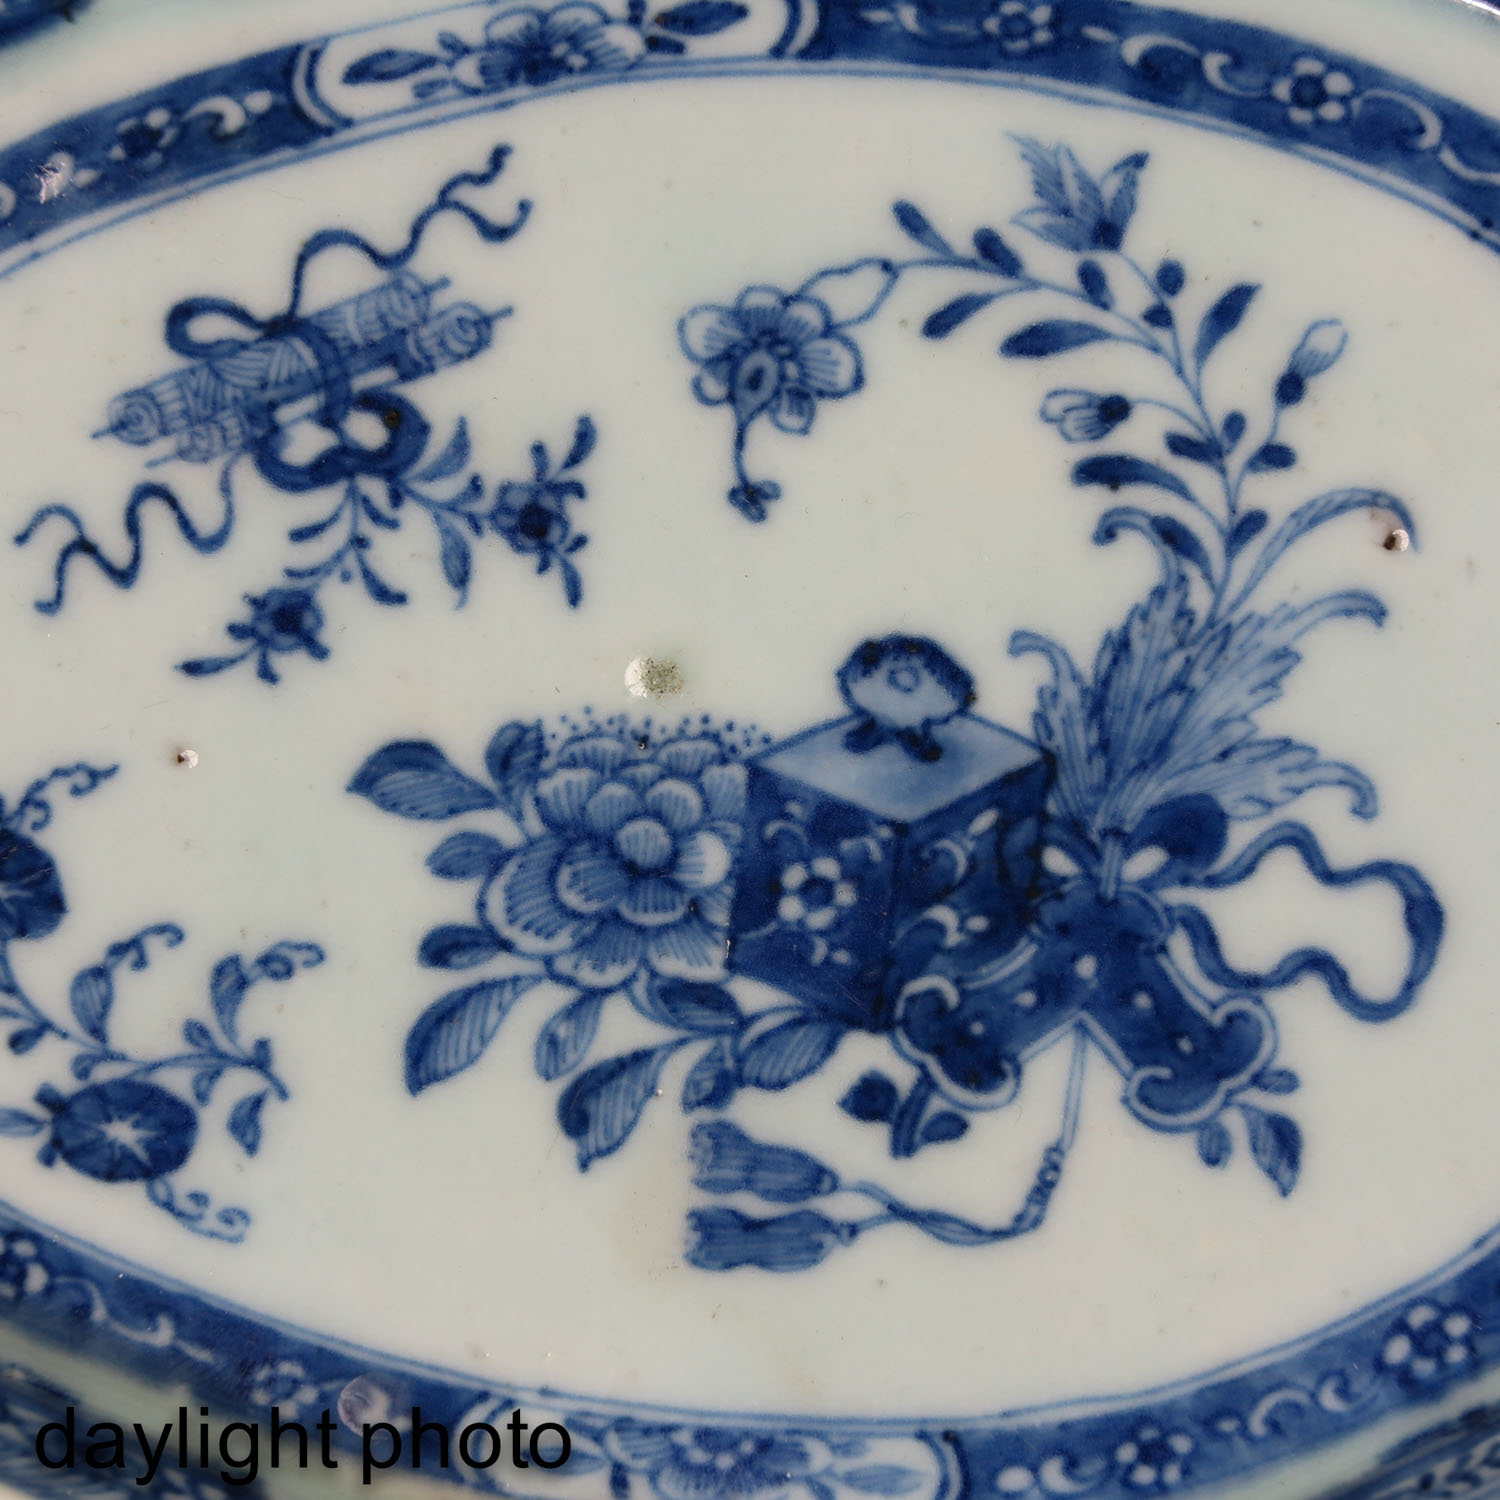 A Collection of Export Porcelain - Image 9 of 9